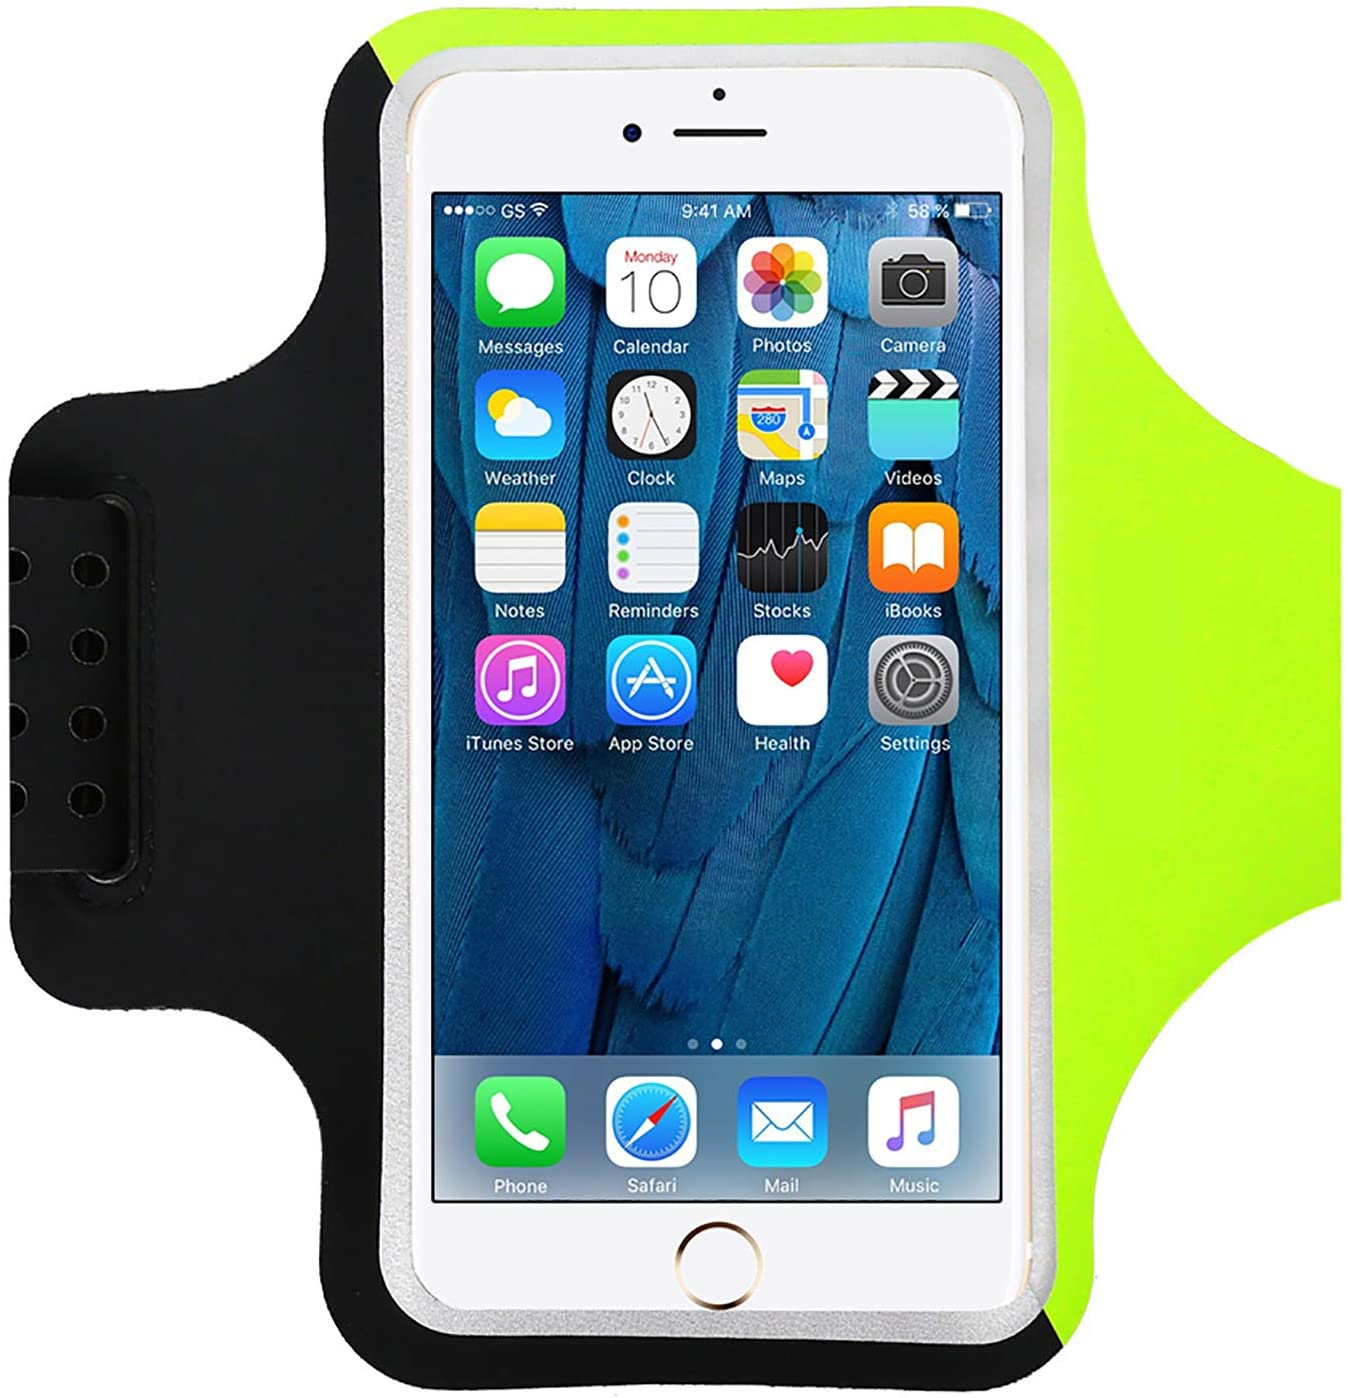 HAISSKY Sweat Resistant Armband, Cell Phone Armband Case Fit iPhone 12/11/Xs Max/X/8 Plus/7 Plus, Galaxy S8/S8 Plus Phones up to 6.0'' with Safety Reflective Strips, Idear for Running Sports Biking